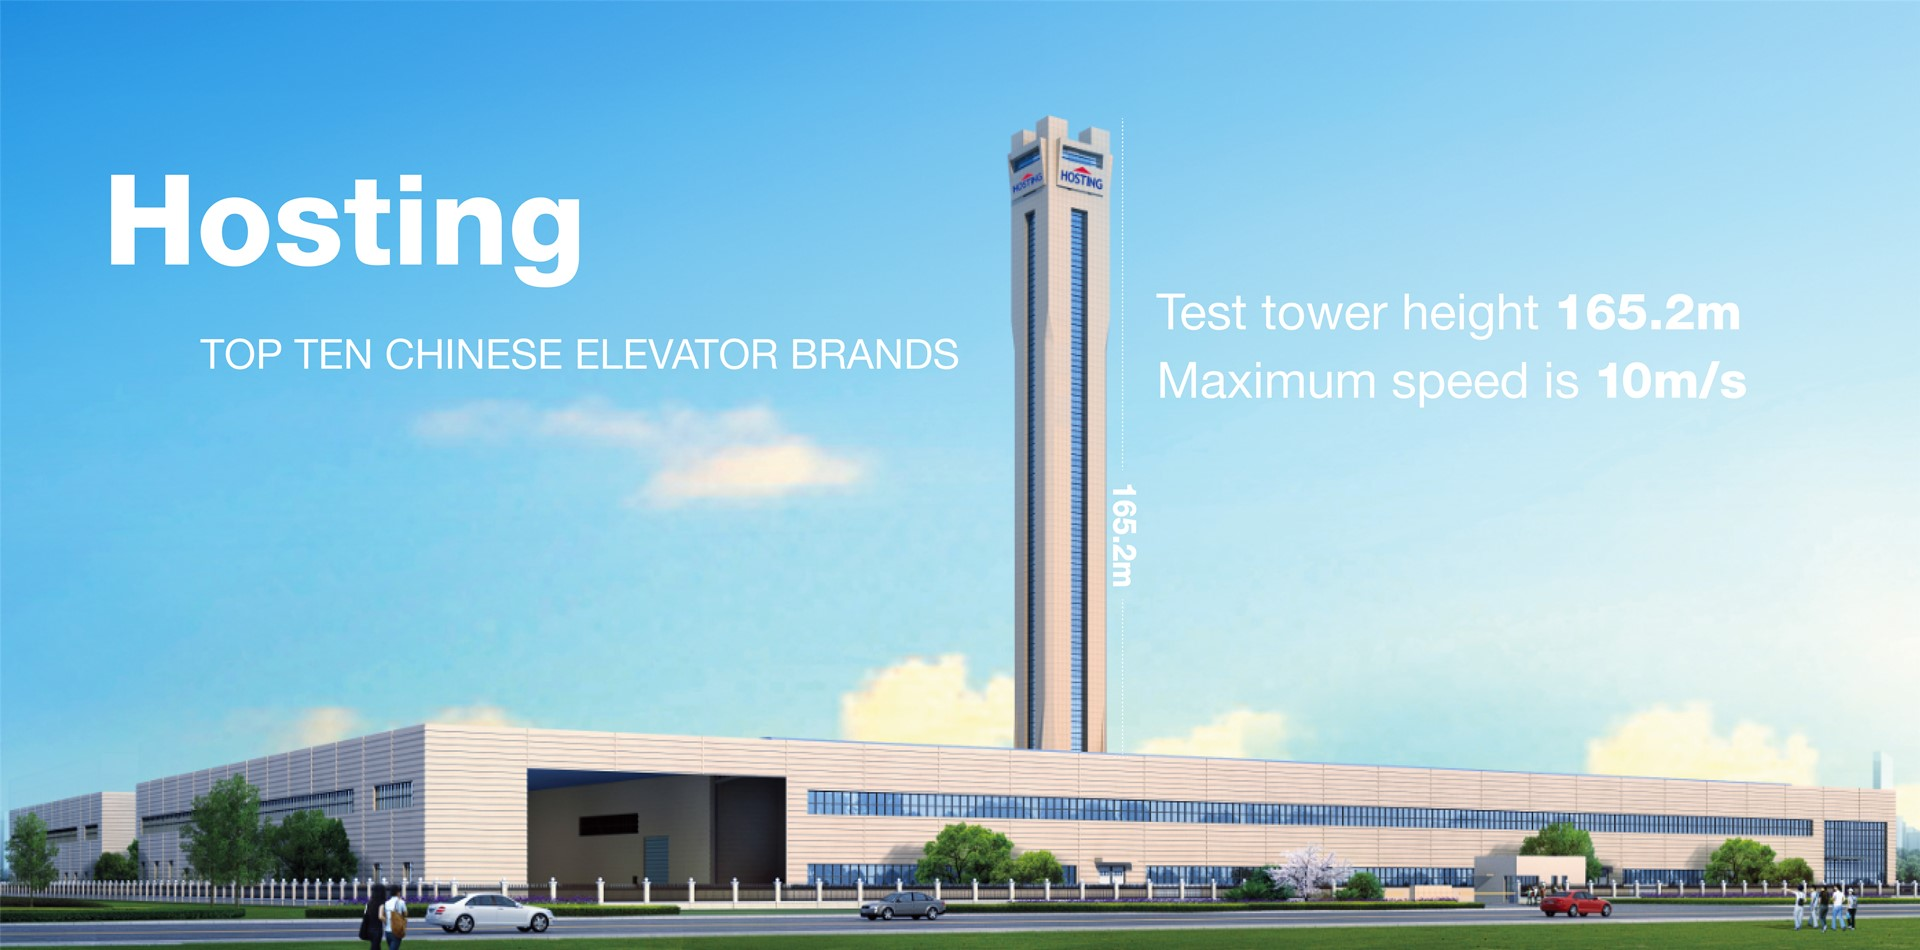 Hosting Elevator Test Tower - Elevator Company